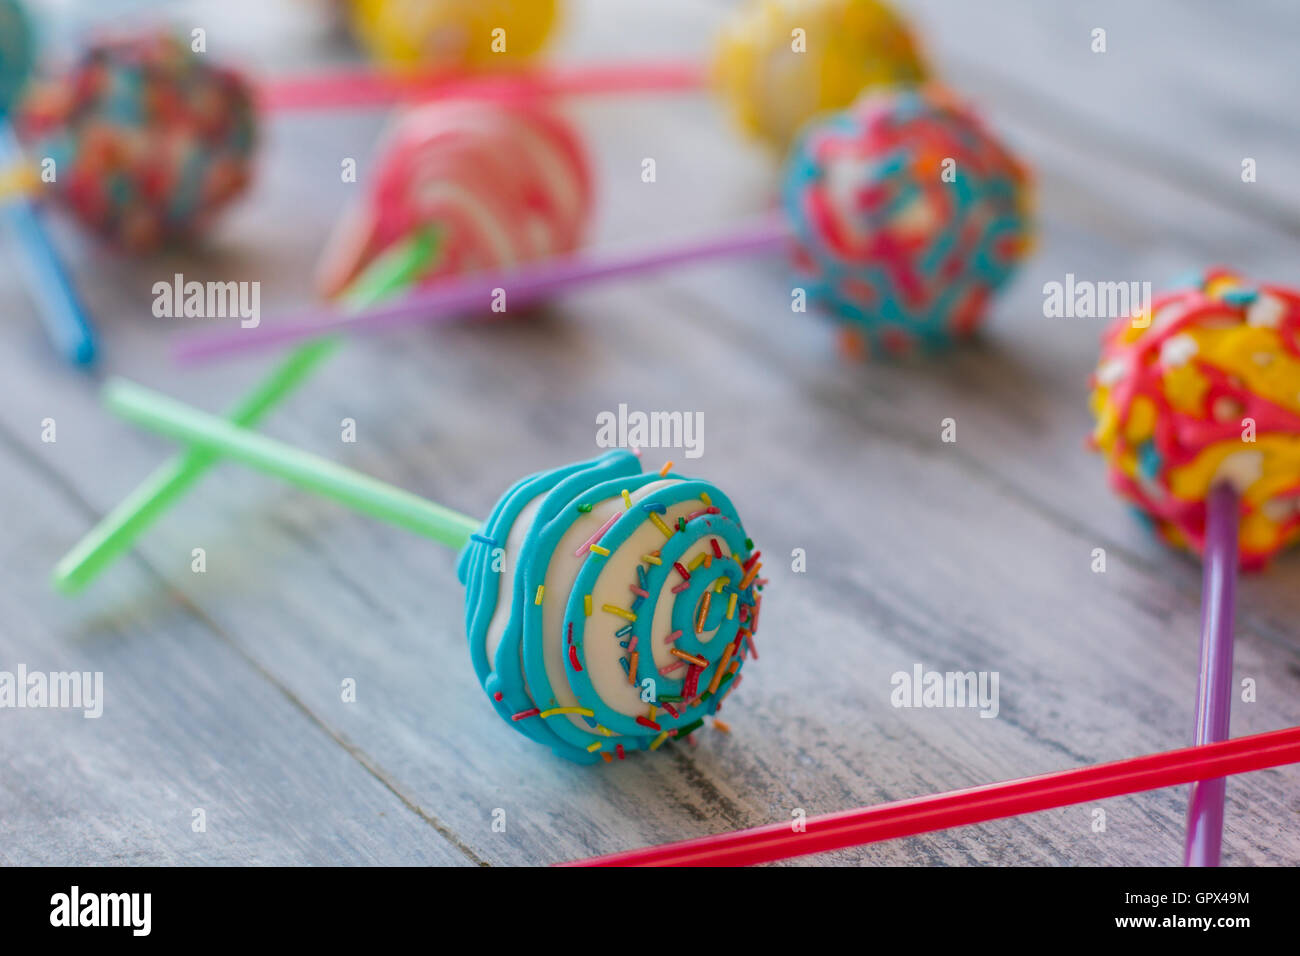 Bright candy on stick. - Stock Image